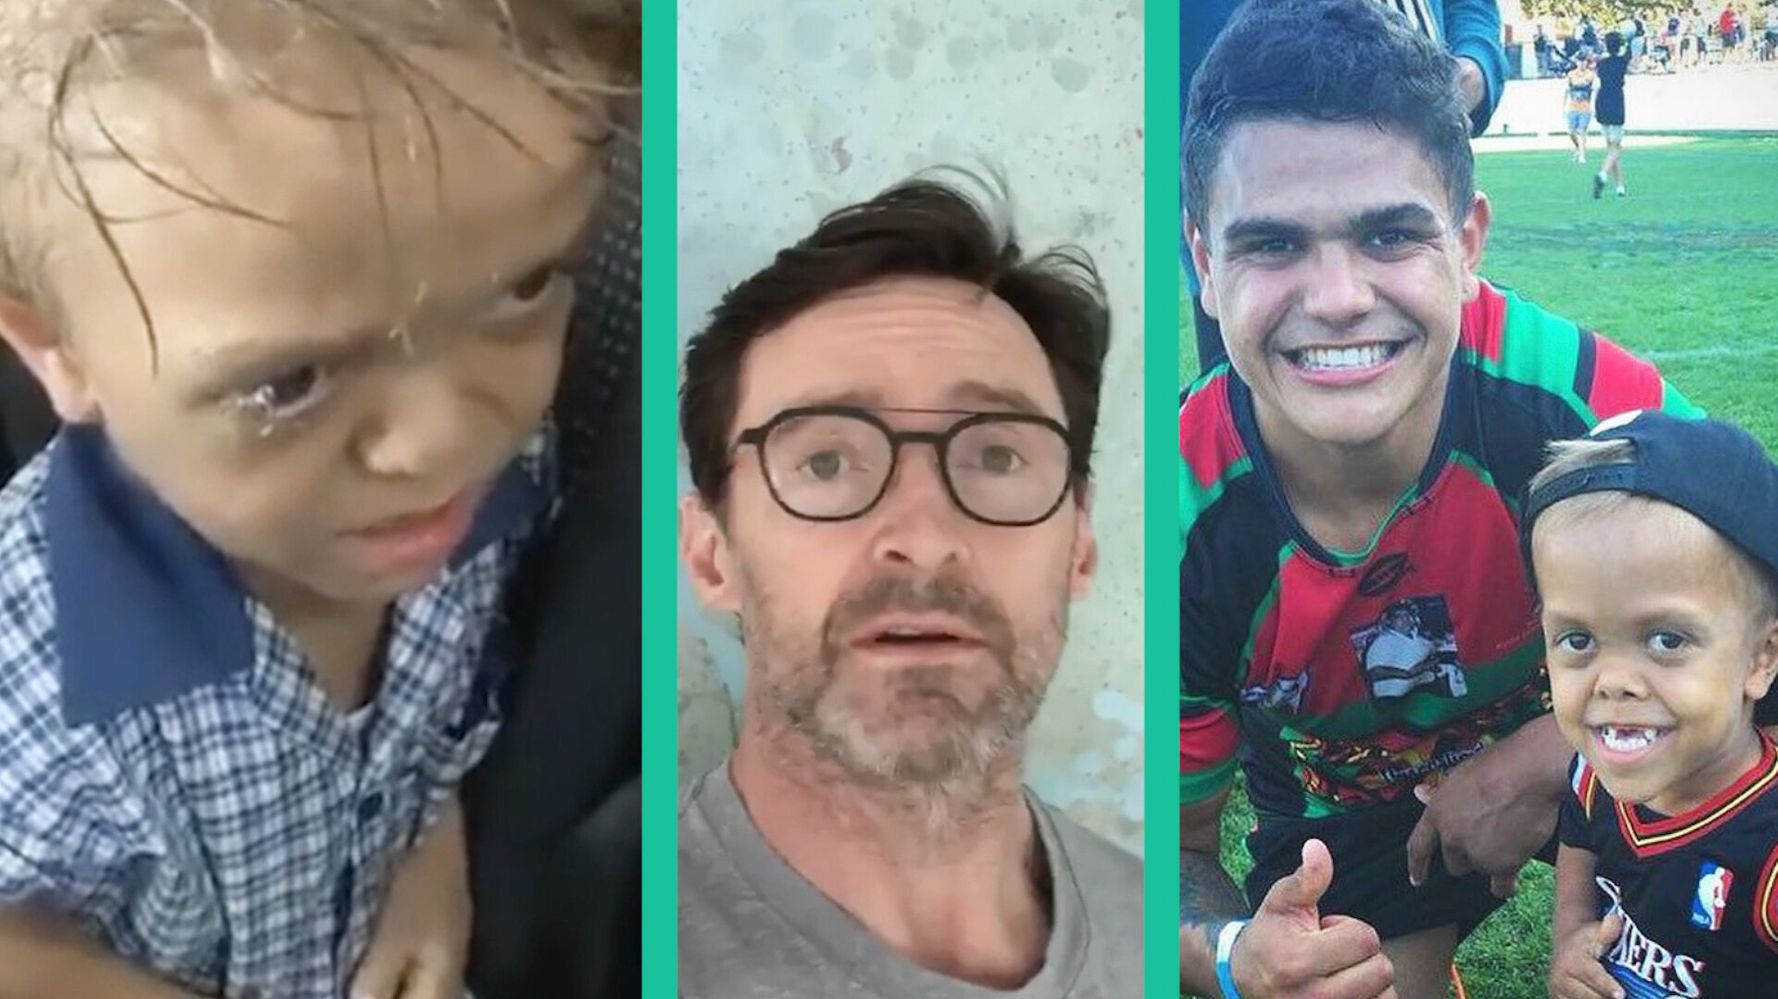 Bullied Boy In Heartbreaking Video Receives Support From Around The World